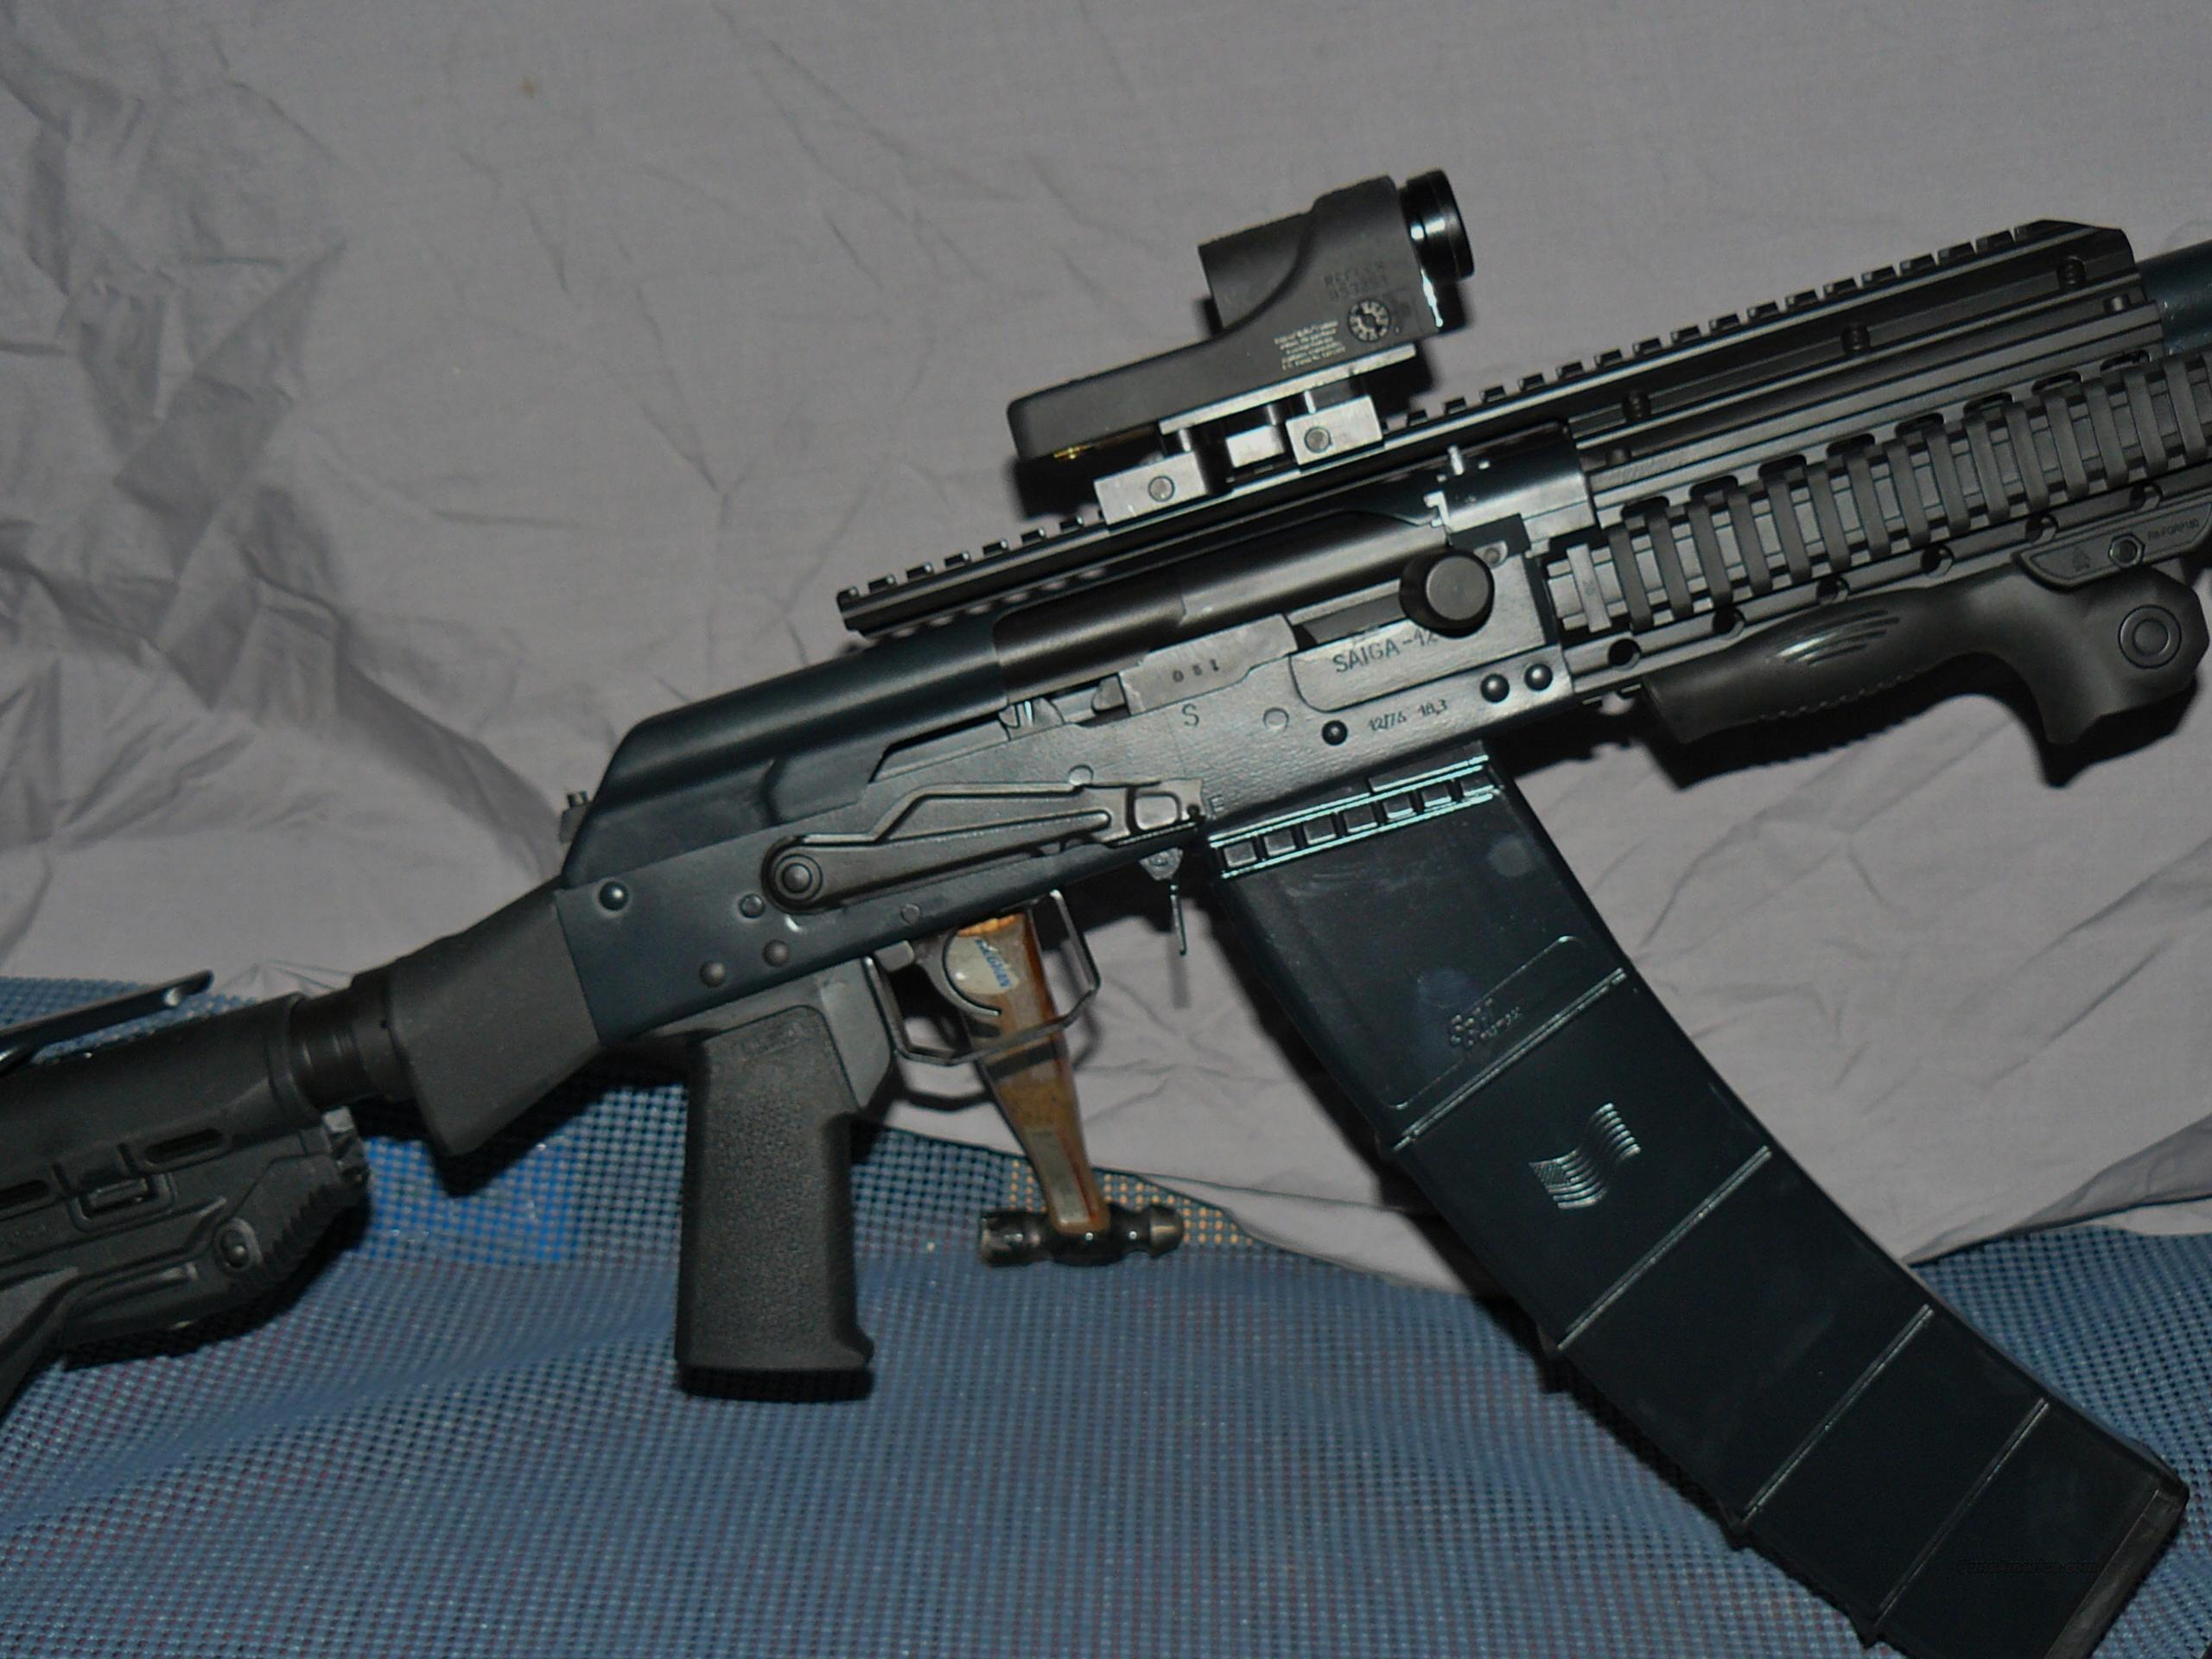 SPECIAL EDITION SAIGA 12 IZ-109, ACOG and CERAKOTED  Guns > Shotguns > Saiga Shotguns > Shotguns